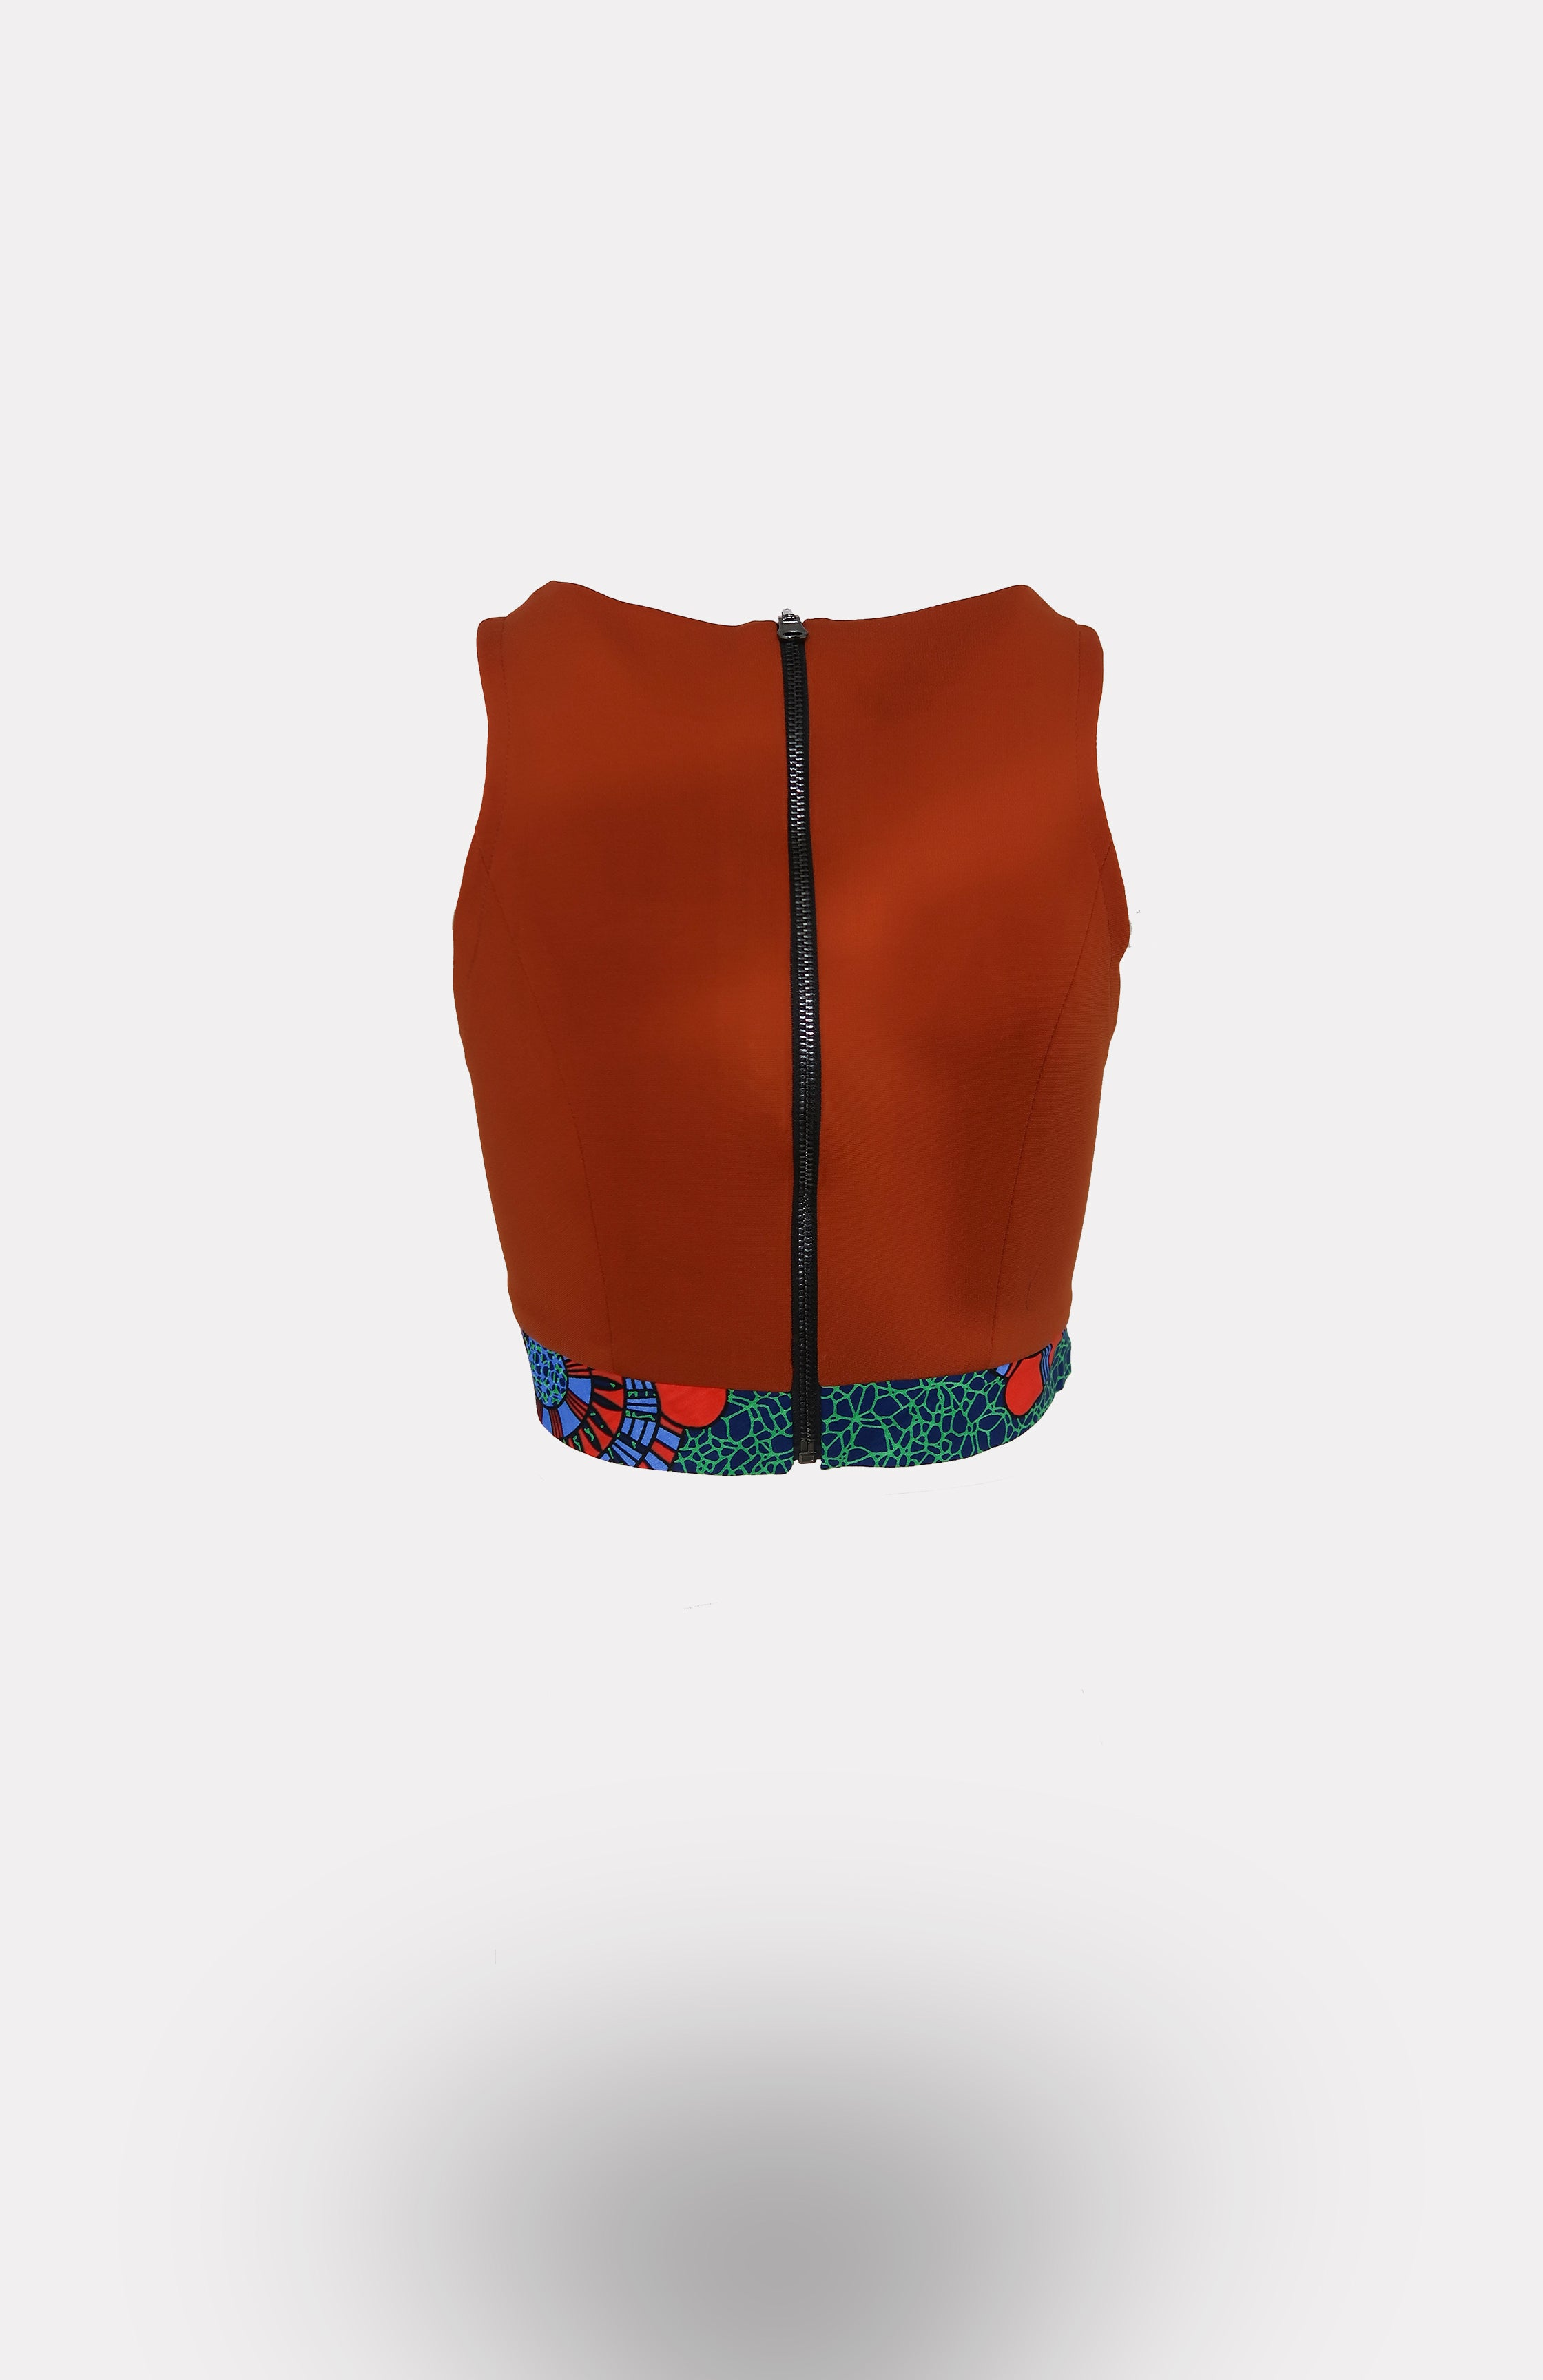 Envelope Crop Top in Orange w/ Ikeogu Edging African Print - African Wax - Ankara - Chinero Nnamani